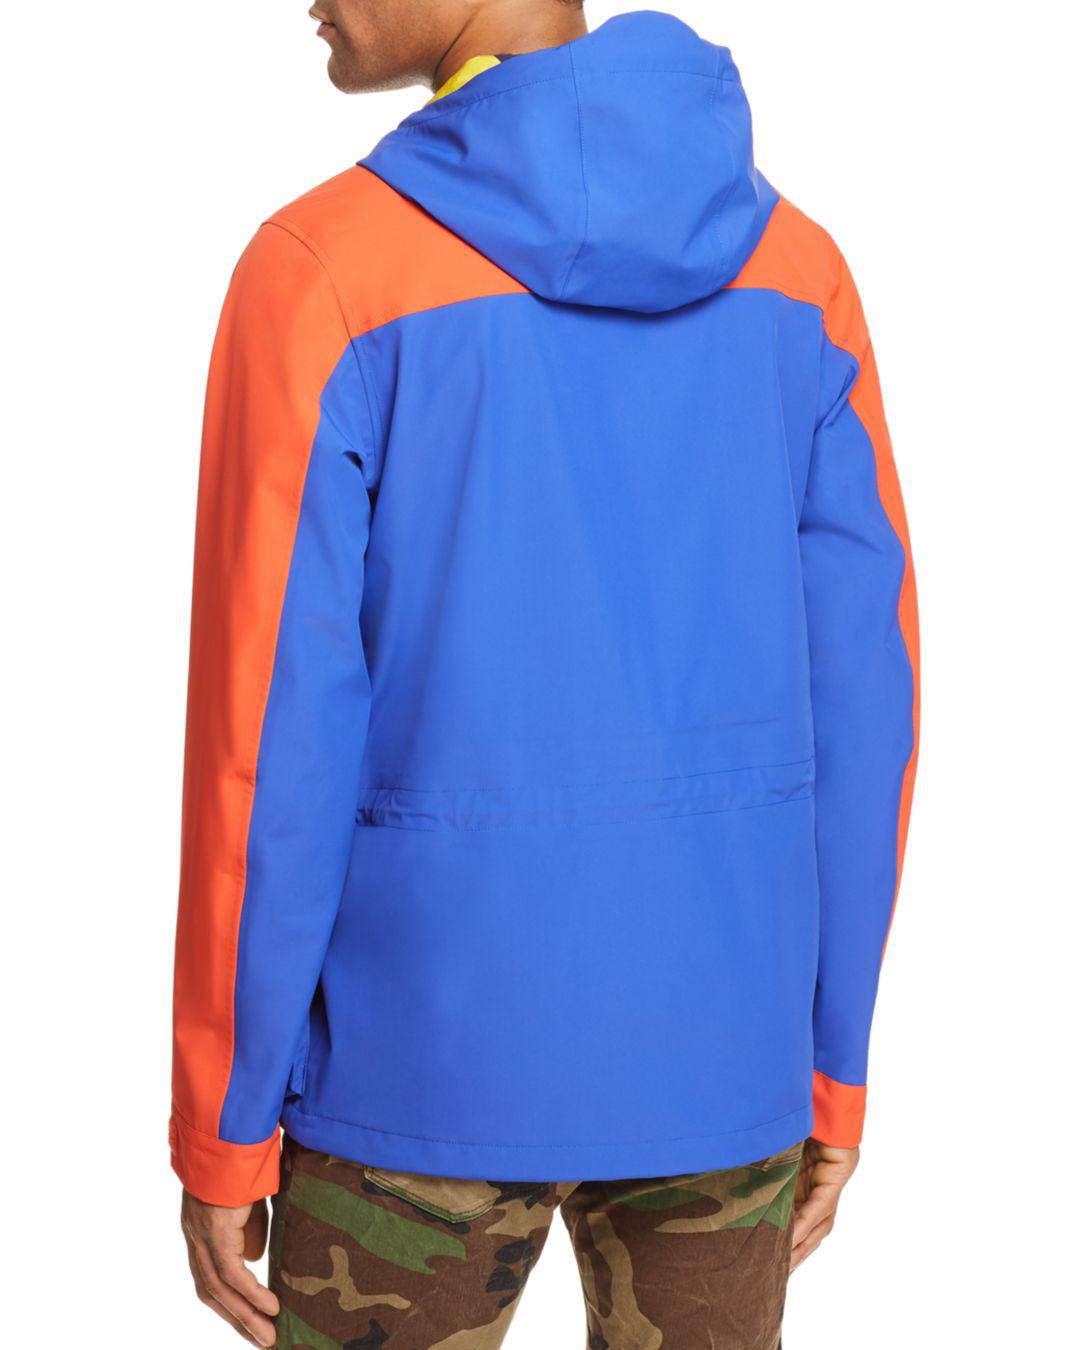 59d5d607b77f6 Lyst - Polo Ralph Lauren Polo Hi-tech Color-block Anorak Jacket in ...